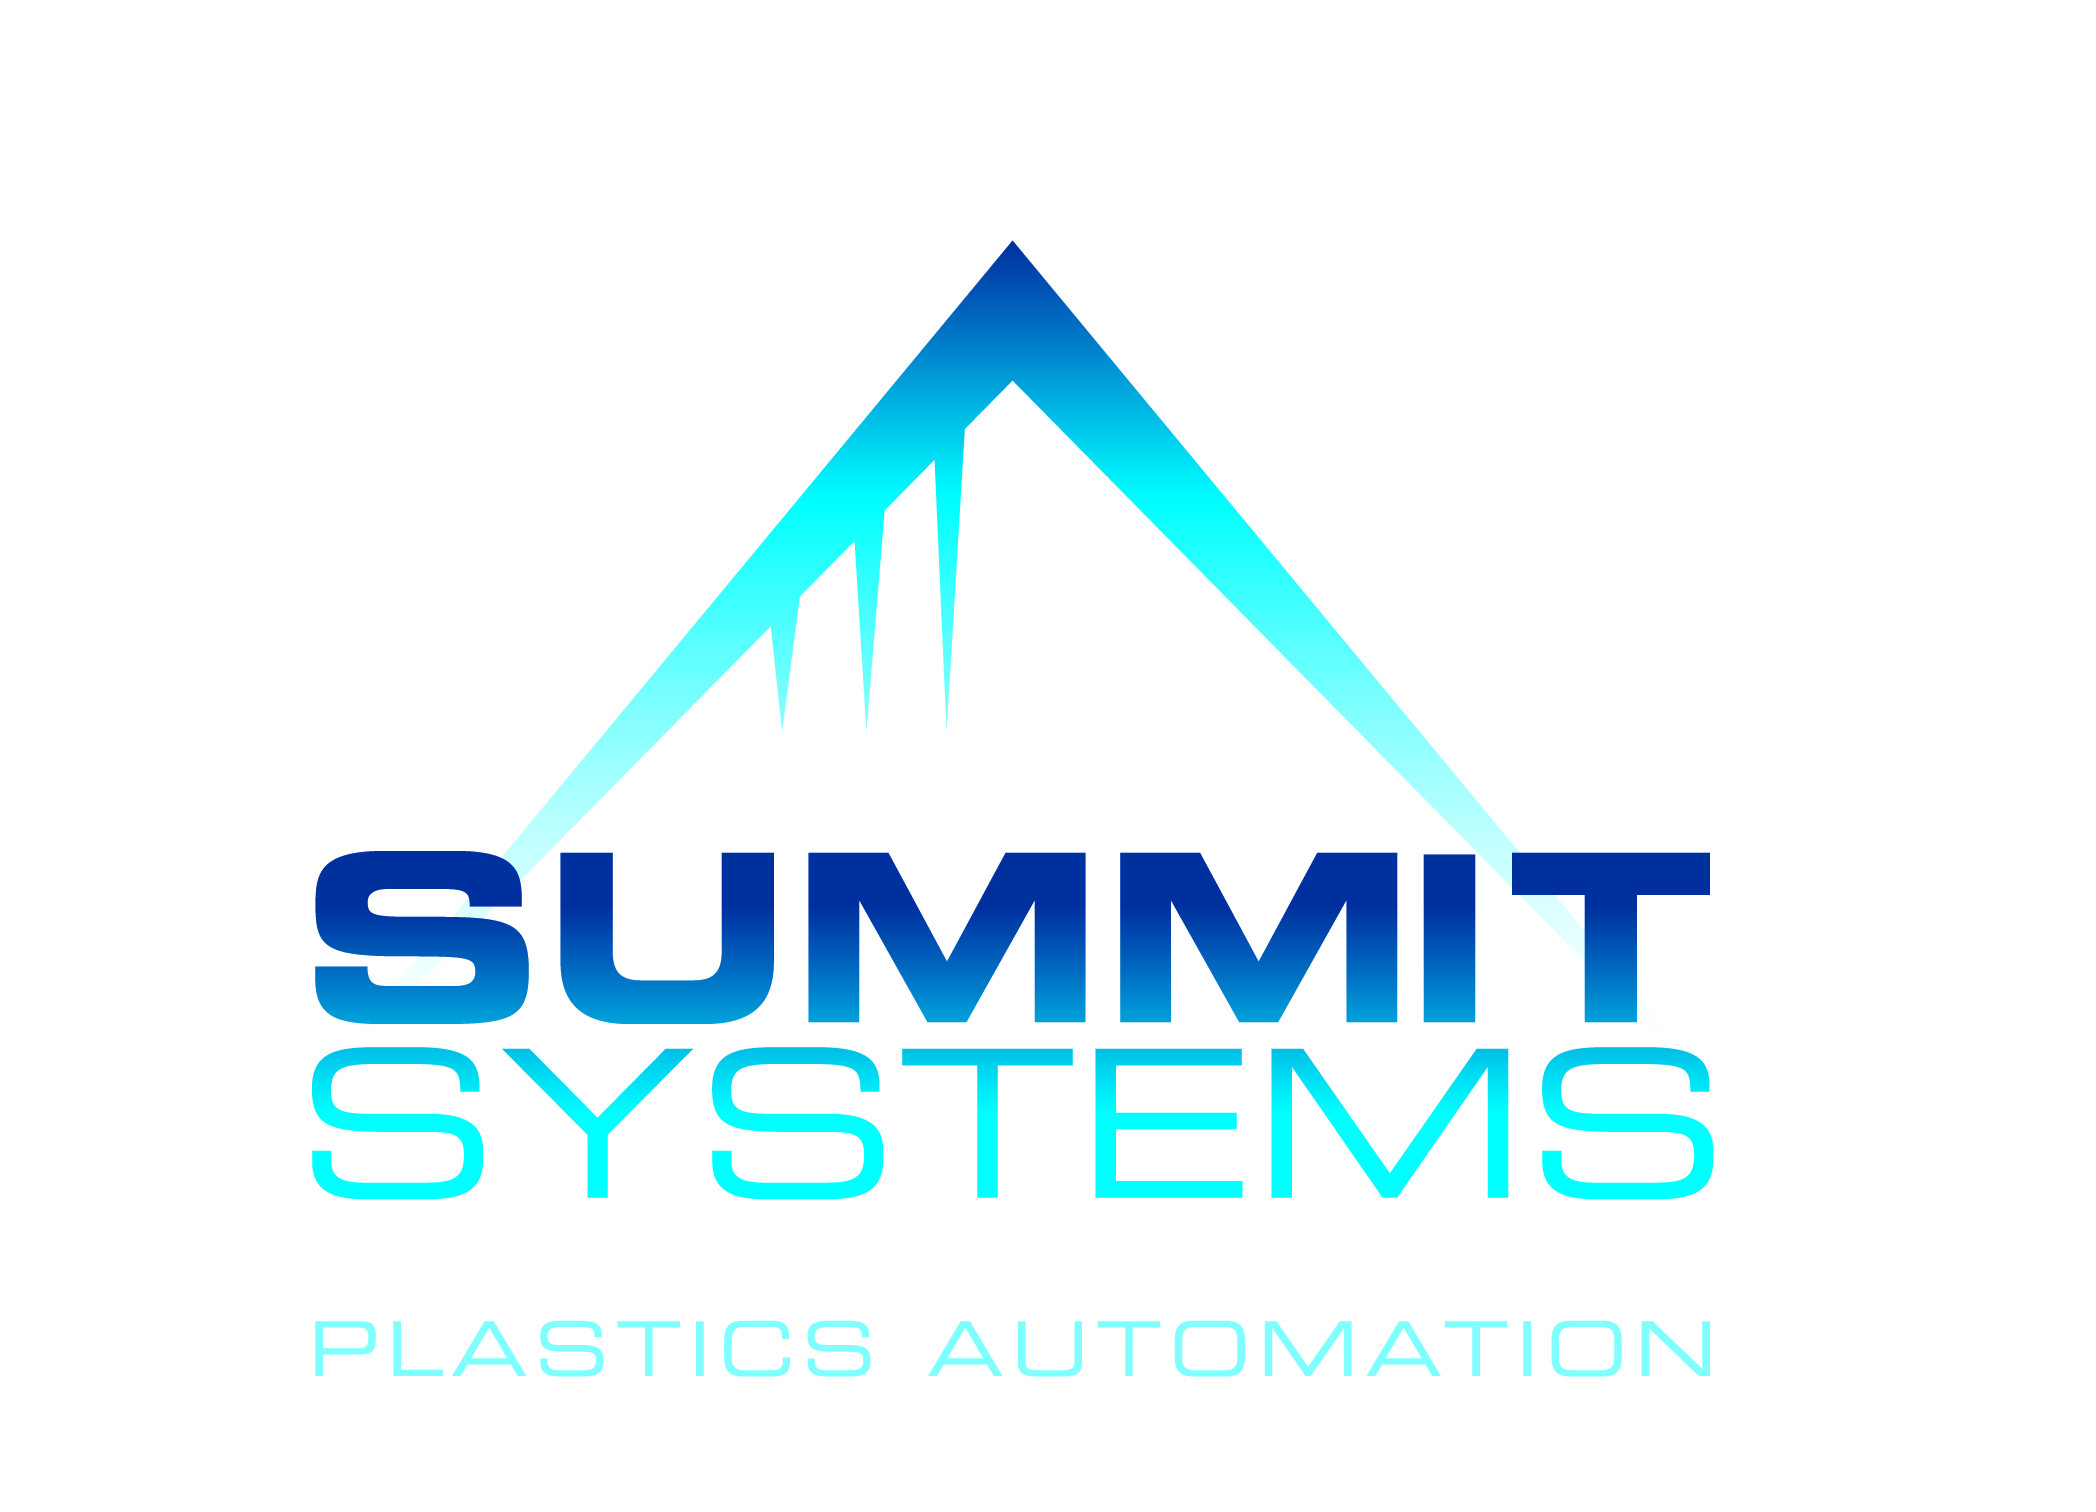 Summit Systems- flat bed conveyors suppliers